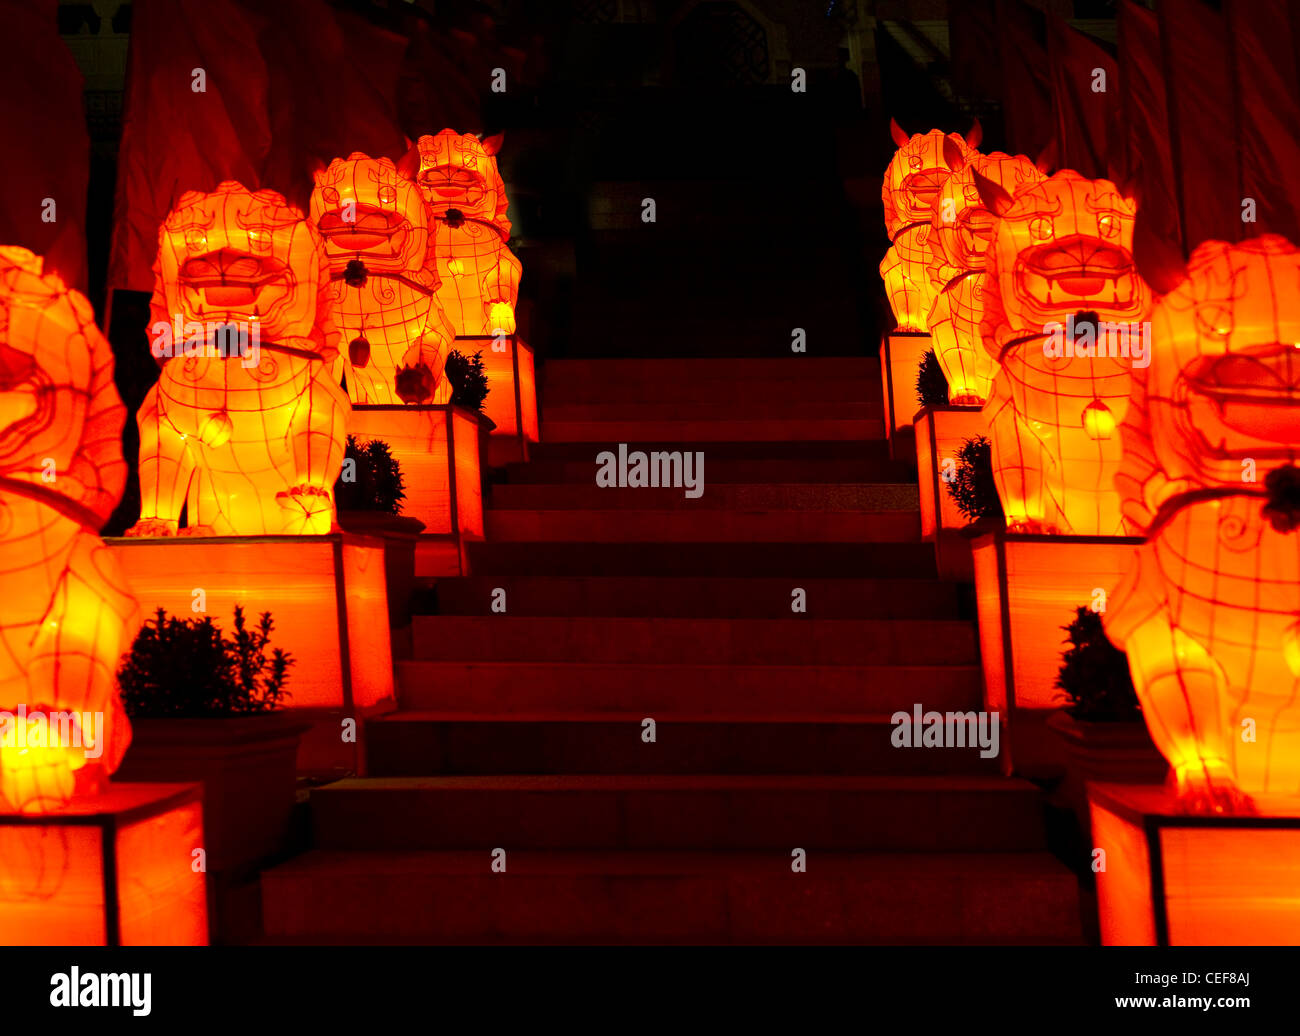 silk lanterns lighting up the night sky of singapore during the mid